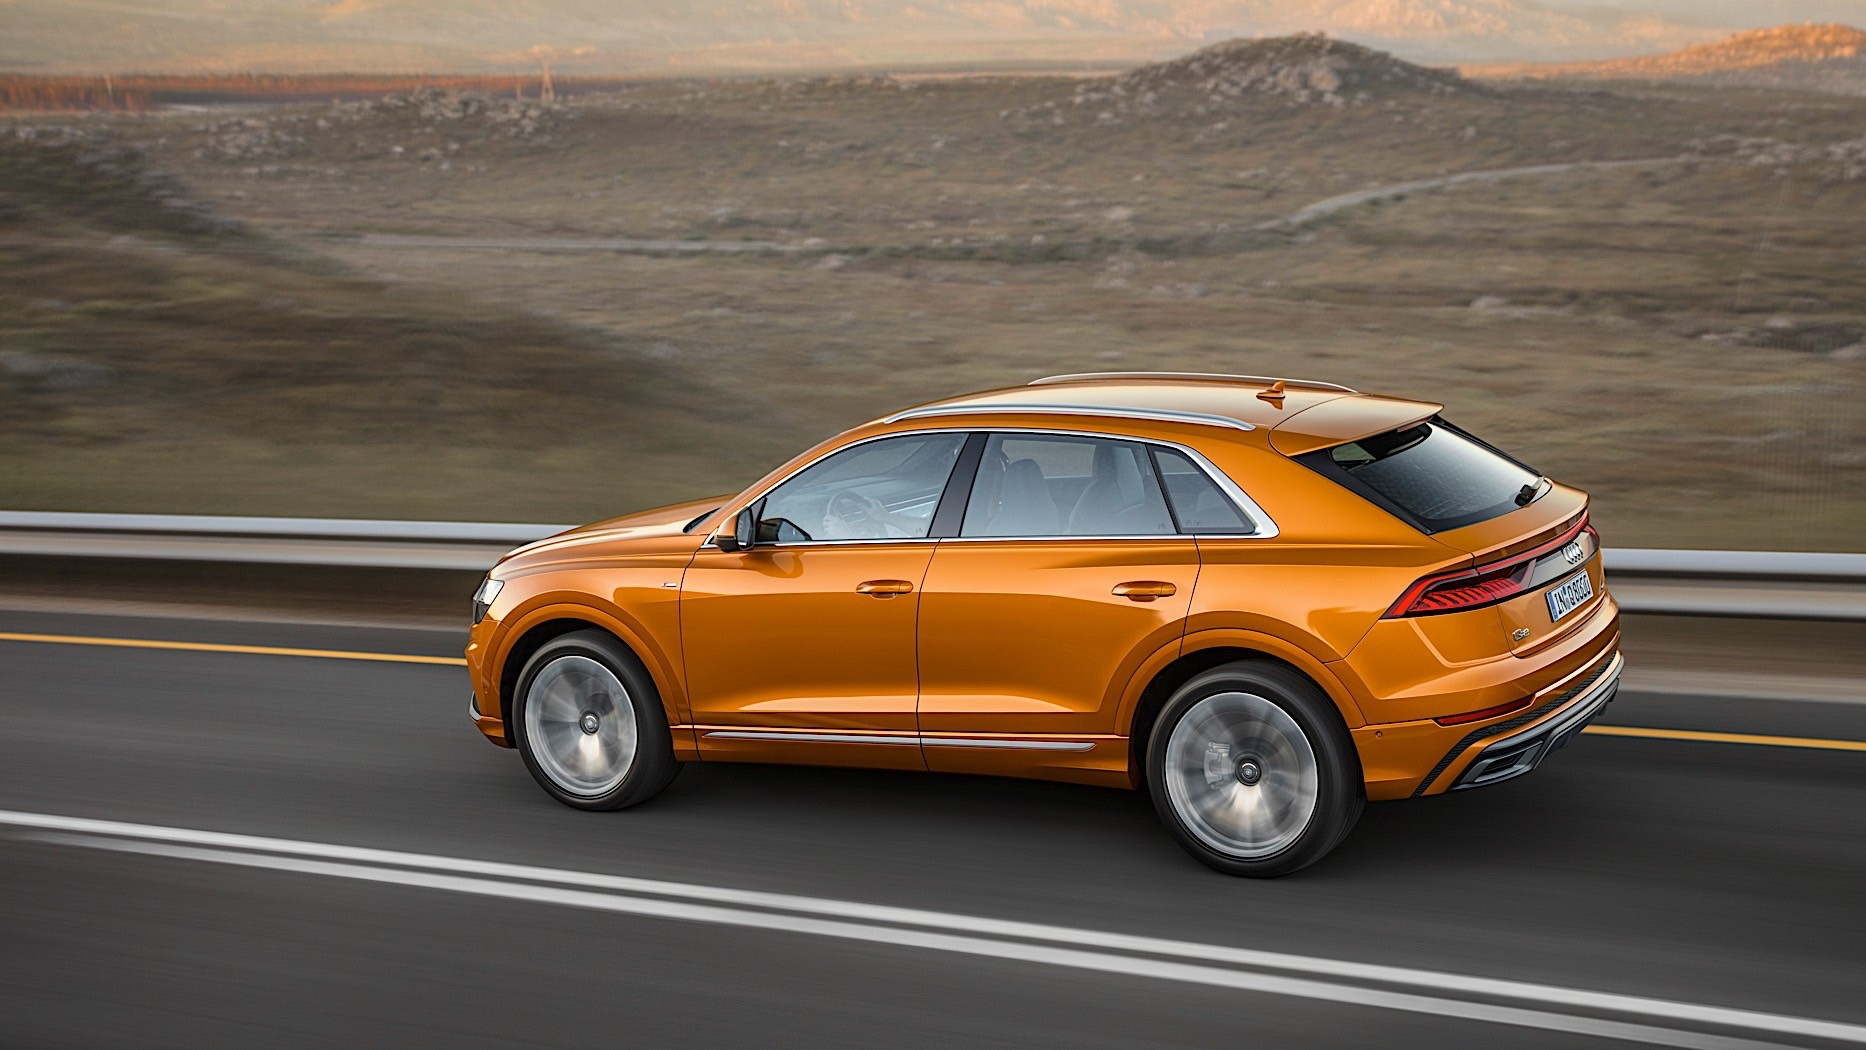 Audi Q8 Is Sporty And Imposing Says First Review